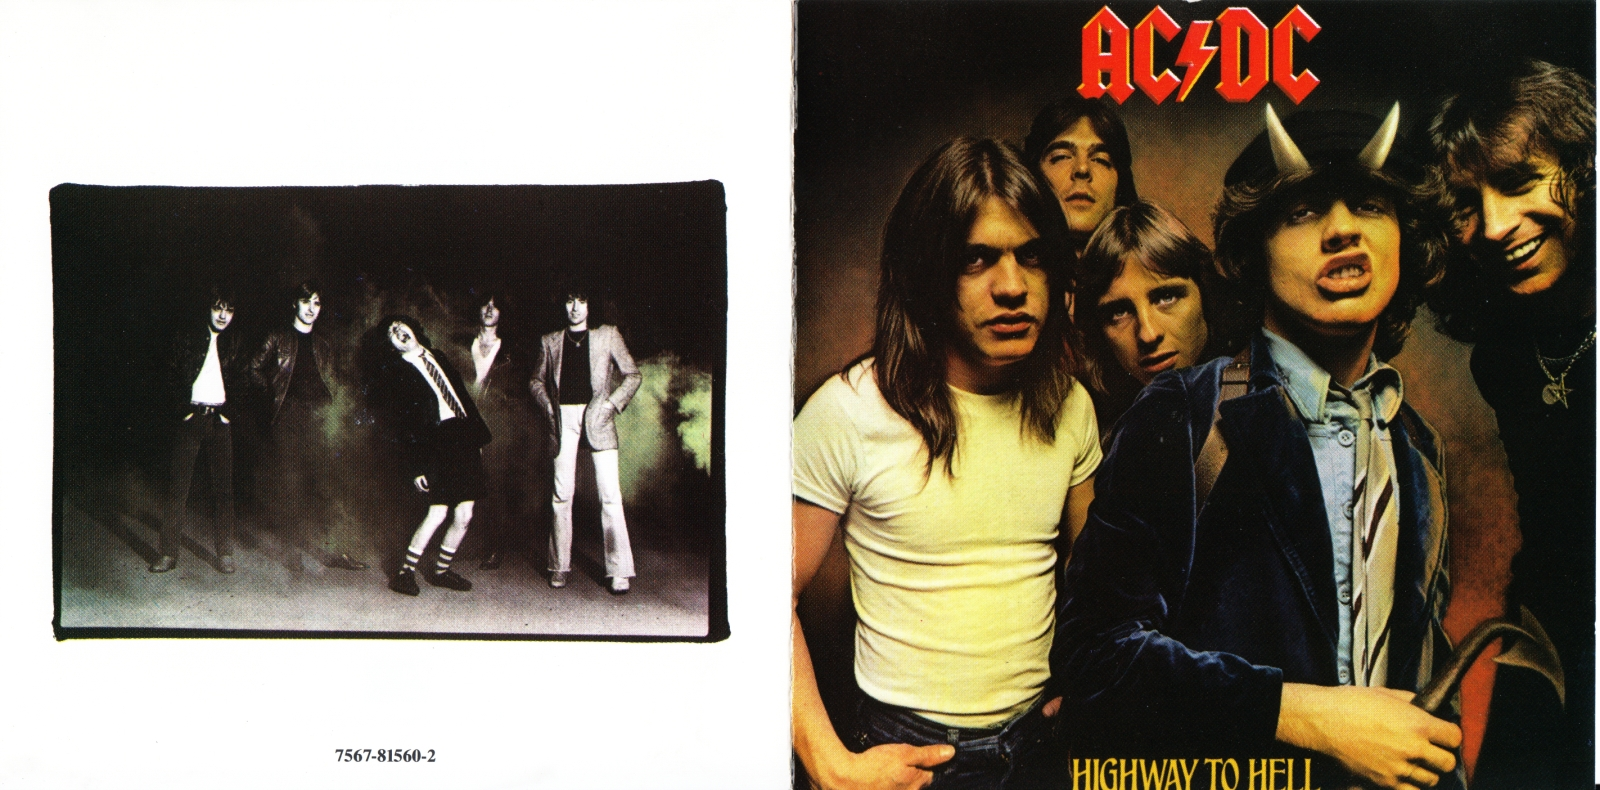 Ac dc highway to hell online